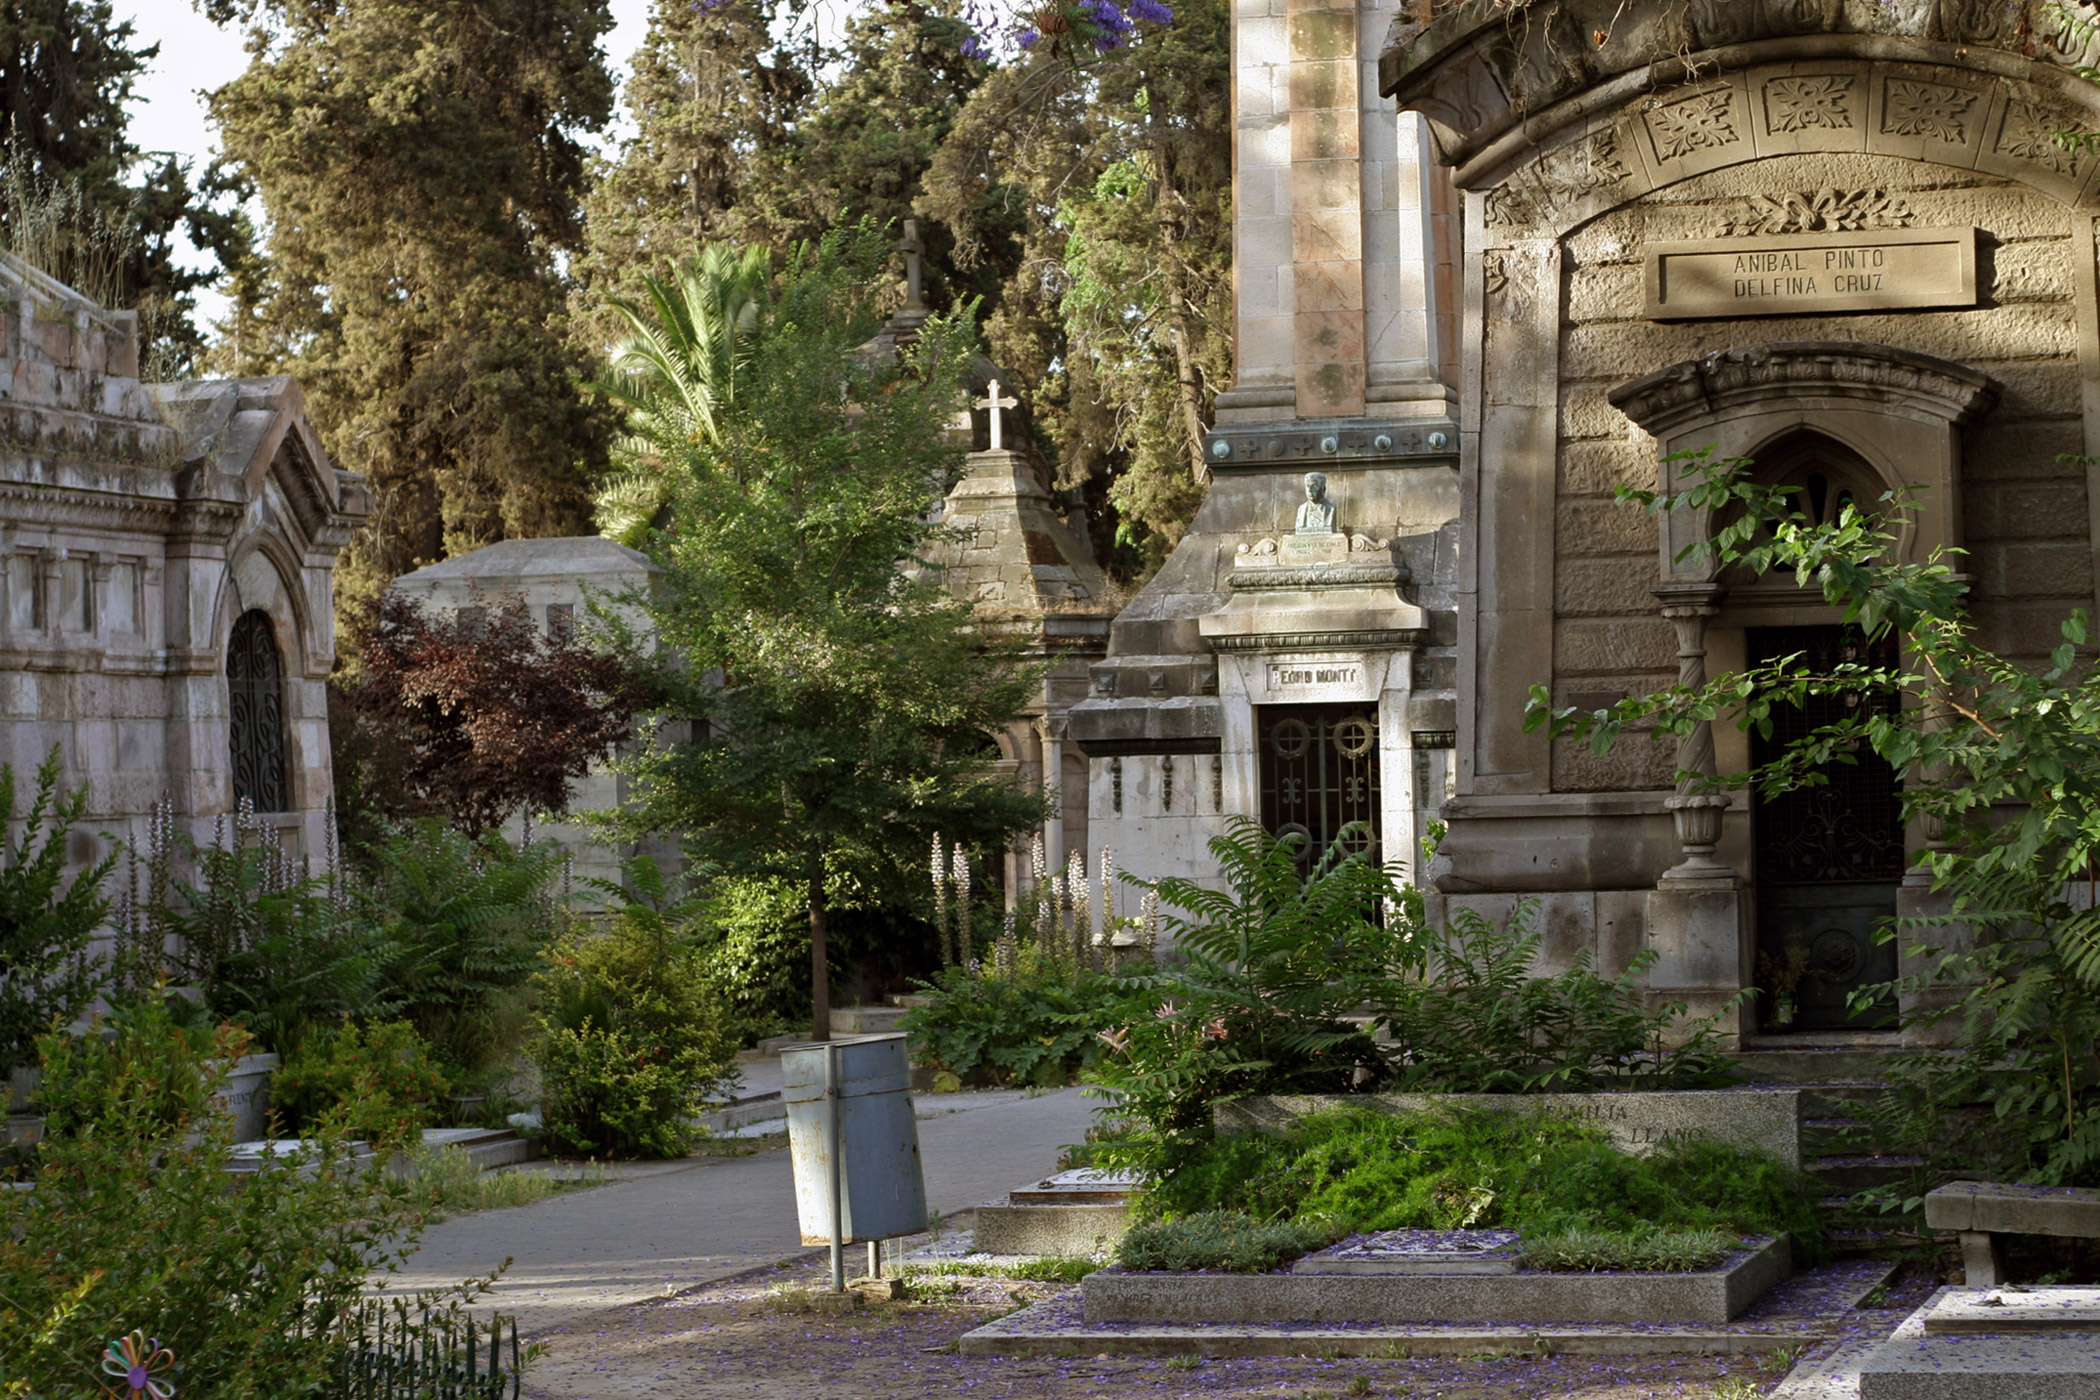 Chile, General                               Cemetery of Santiago: The burial place of presidents and hundreds of other luminaries, has borne the brunt of many earthquakes and is now neglected by the city.